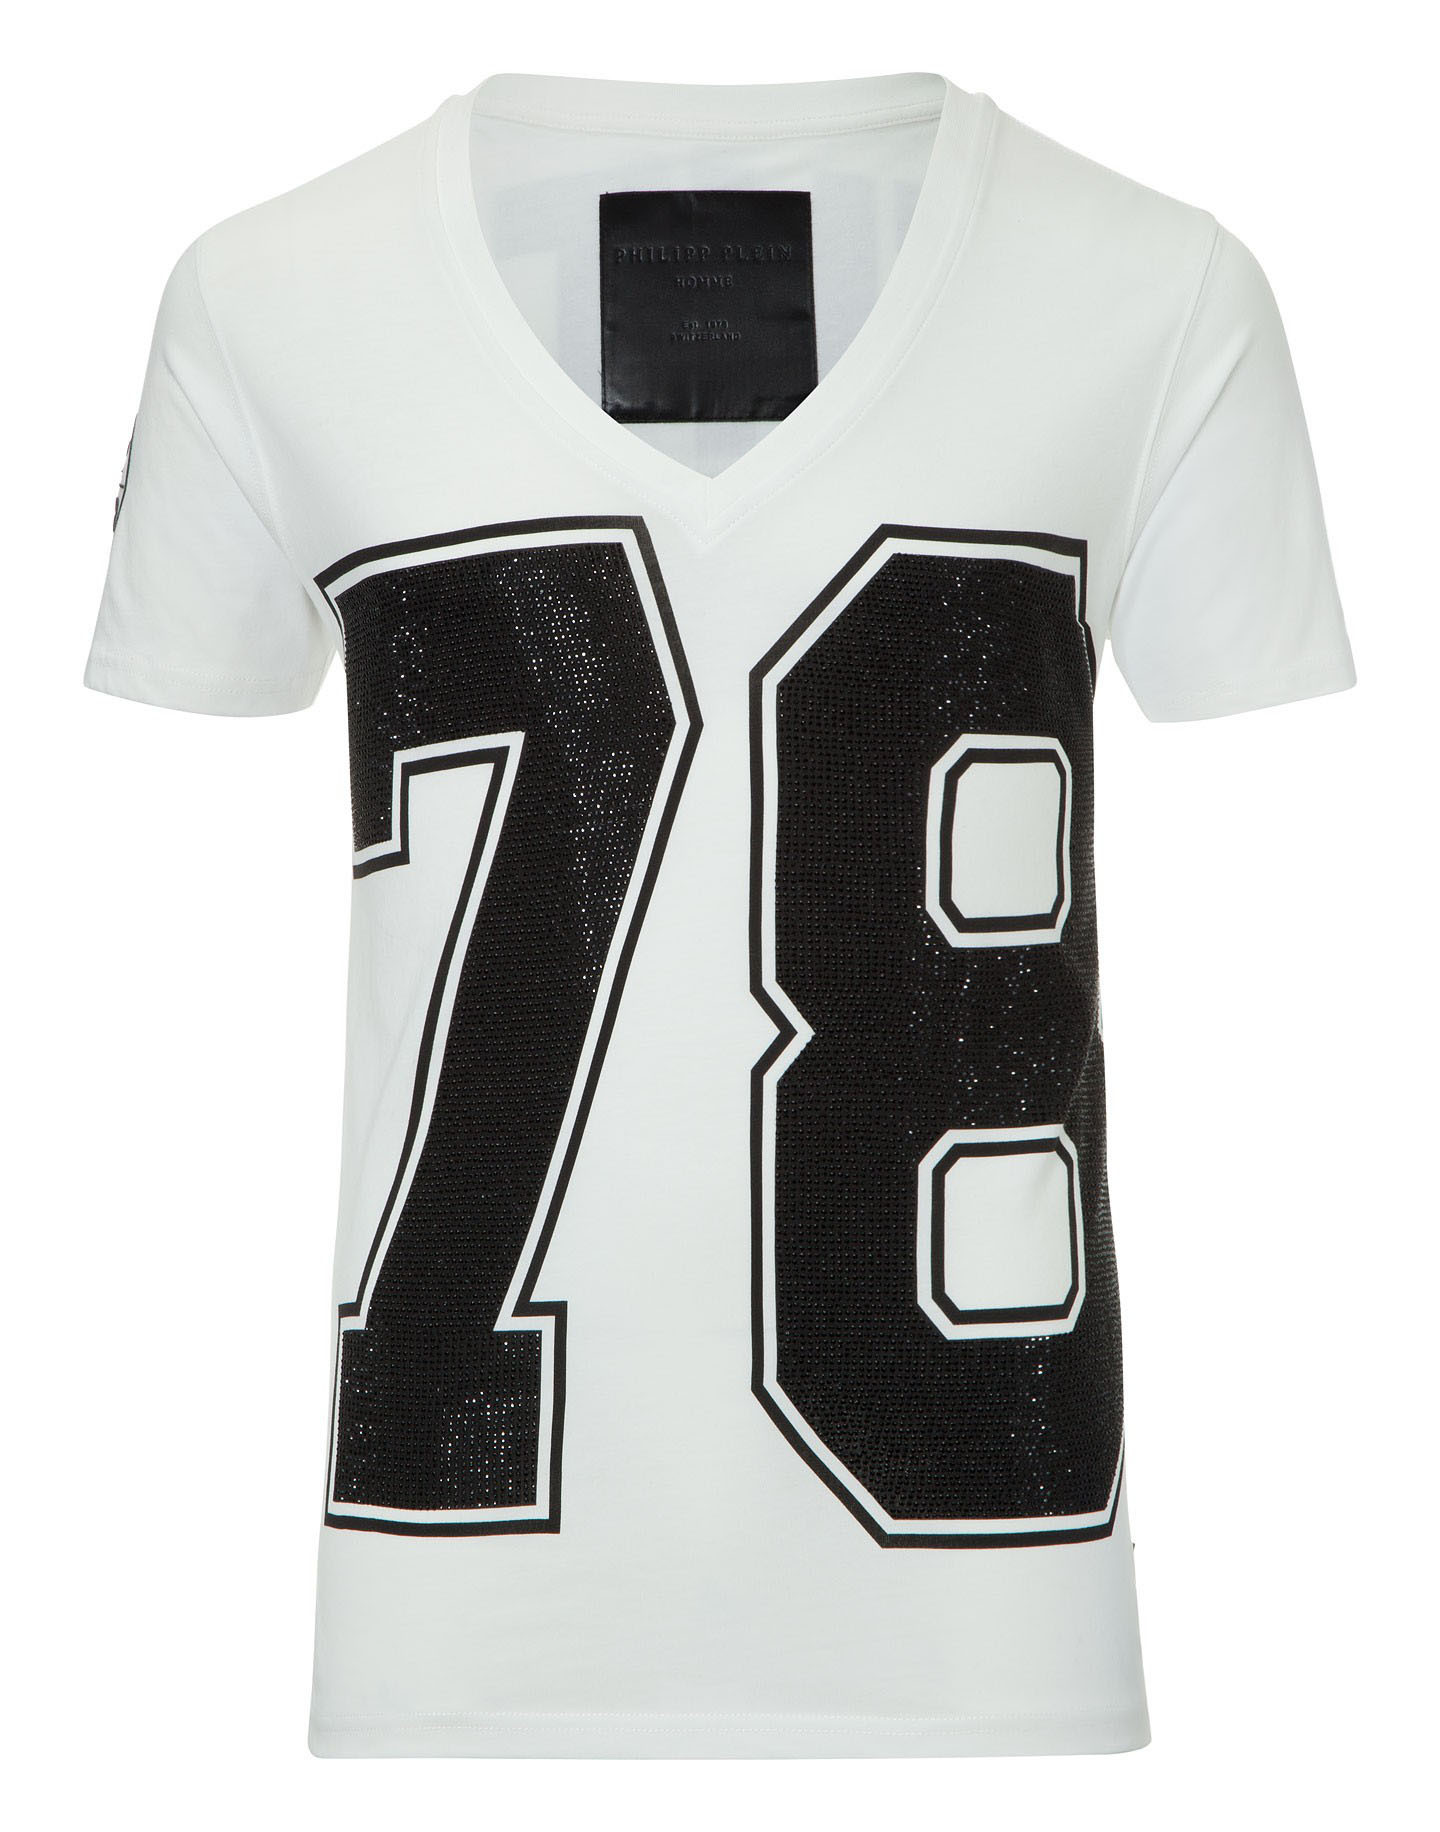 55ce1ad7622 Philipp Plein - 78 Fighter White T-Shirt (FW15-HM345032) .